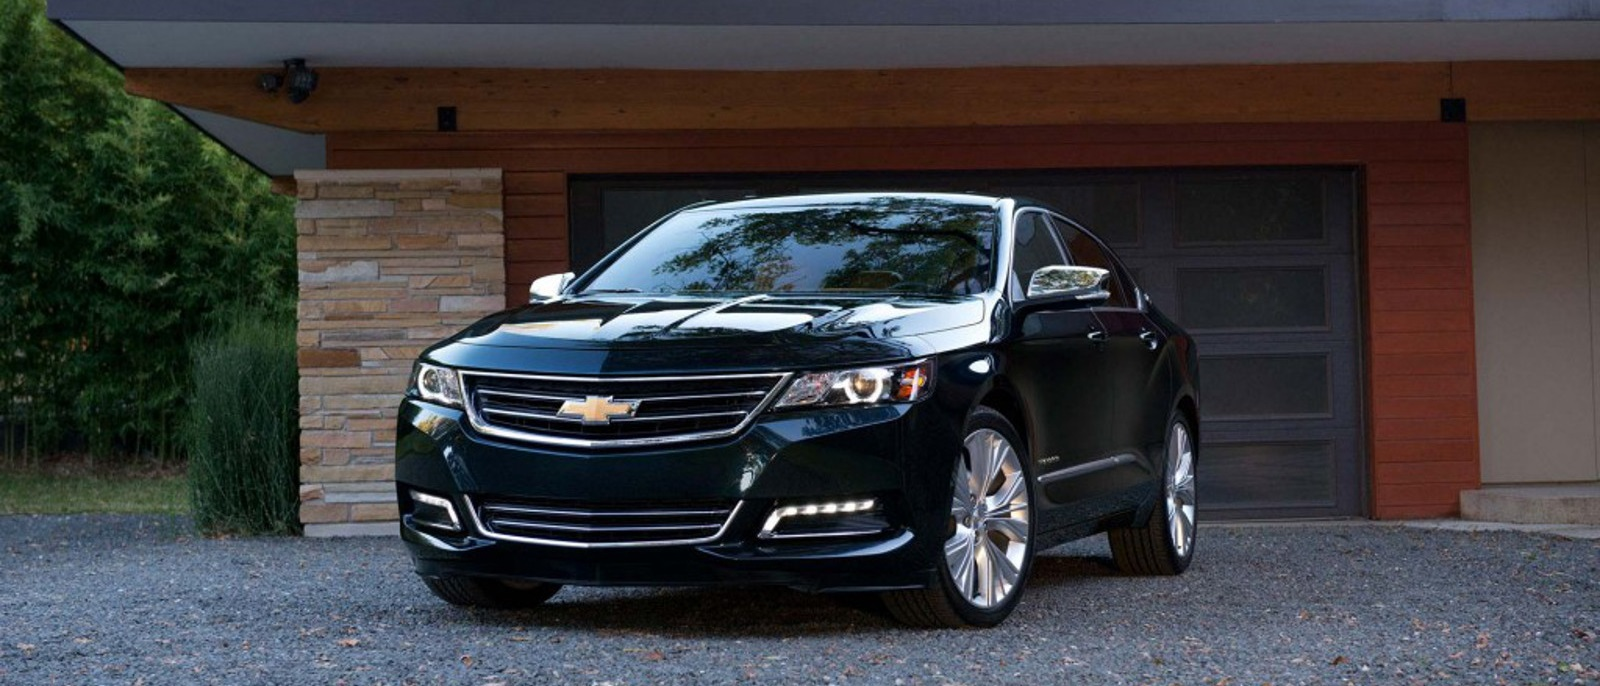 2015 Chevrolet Impala in black